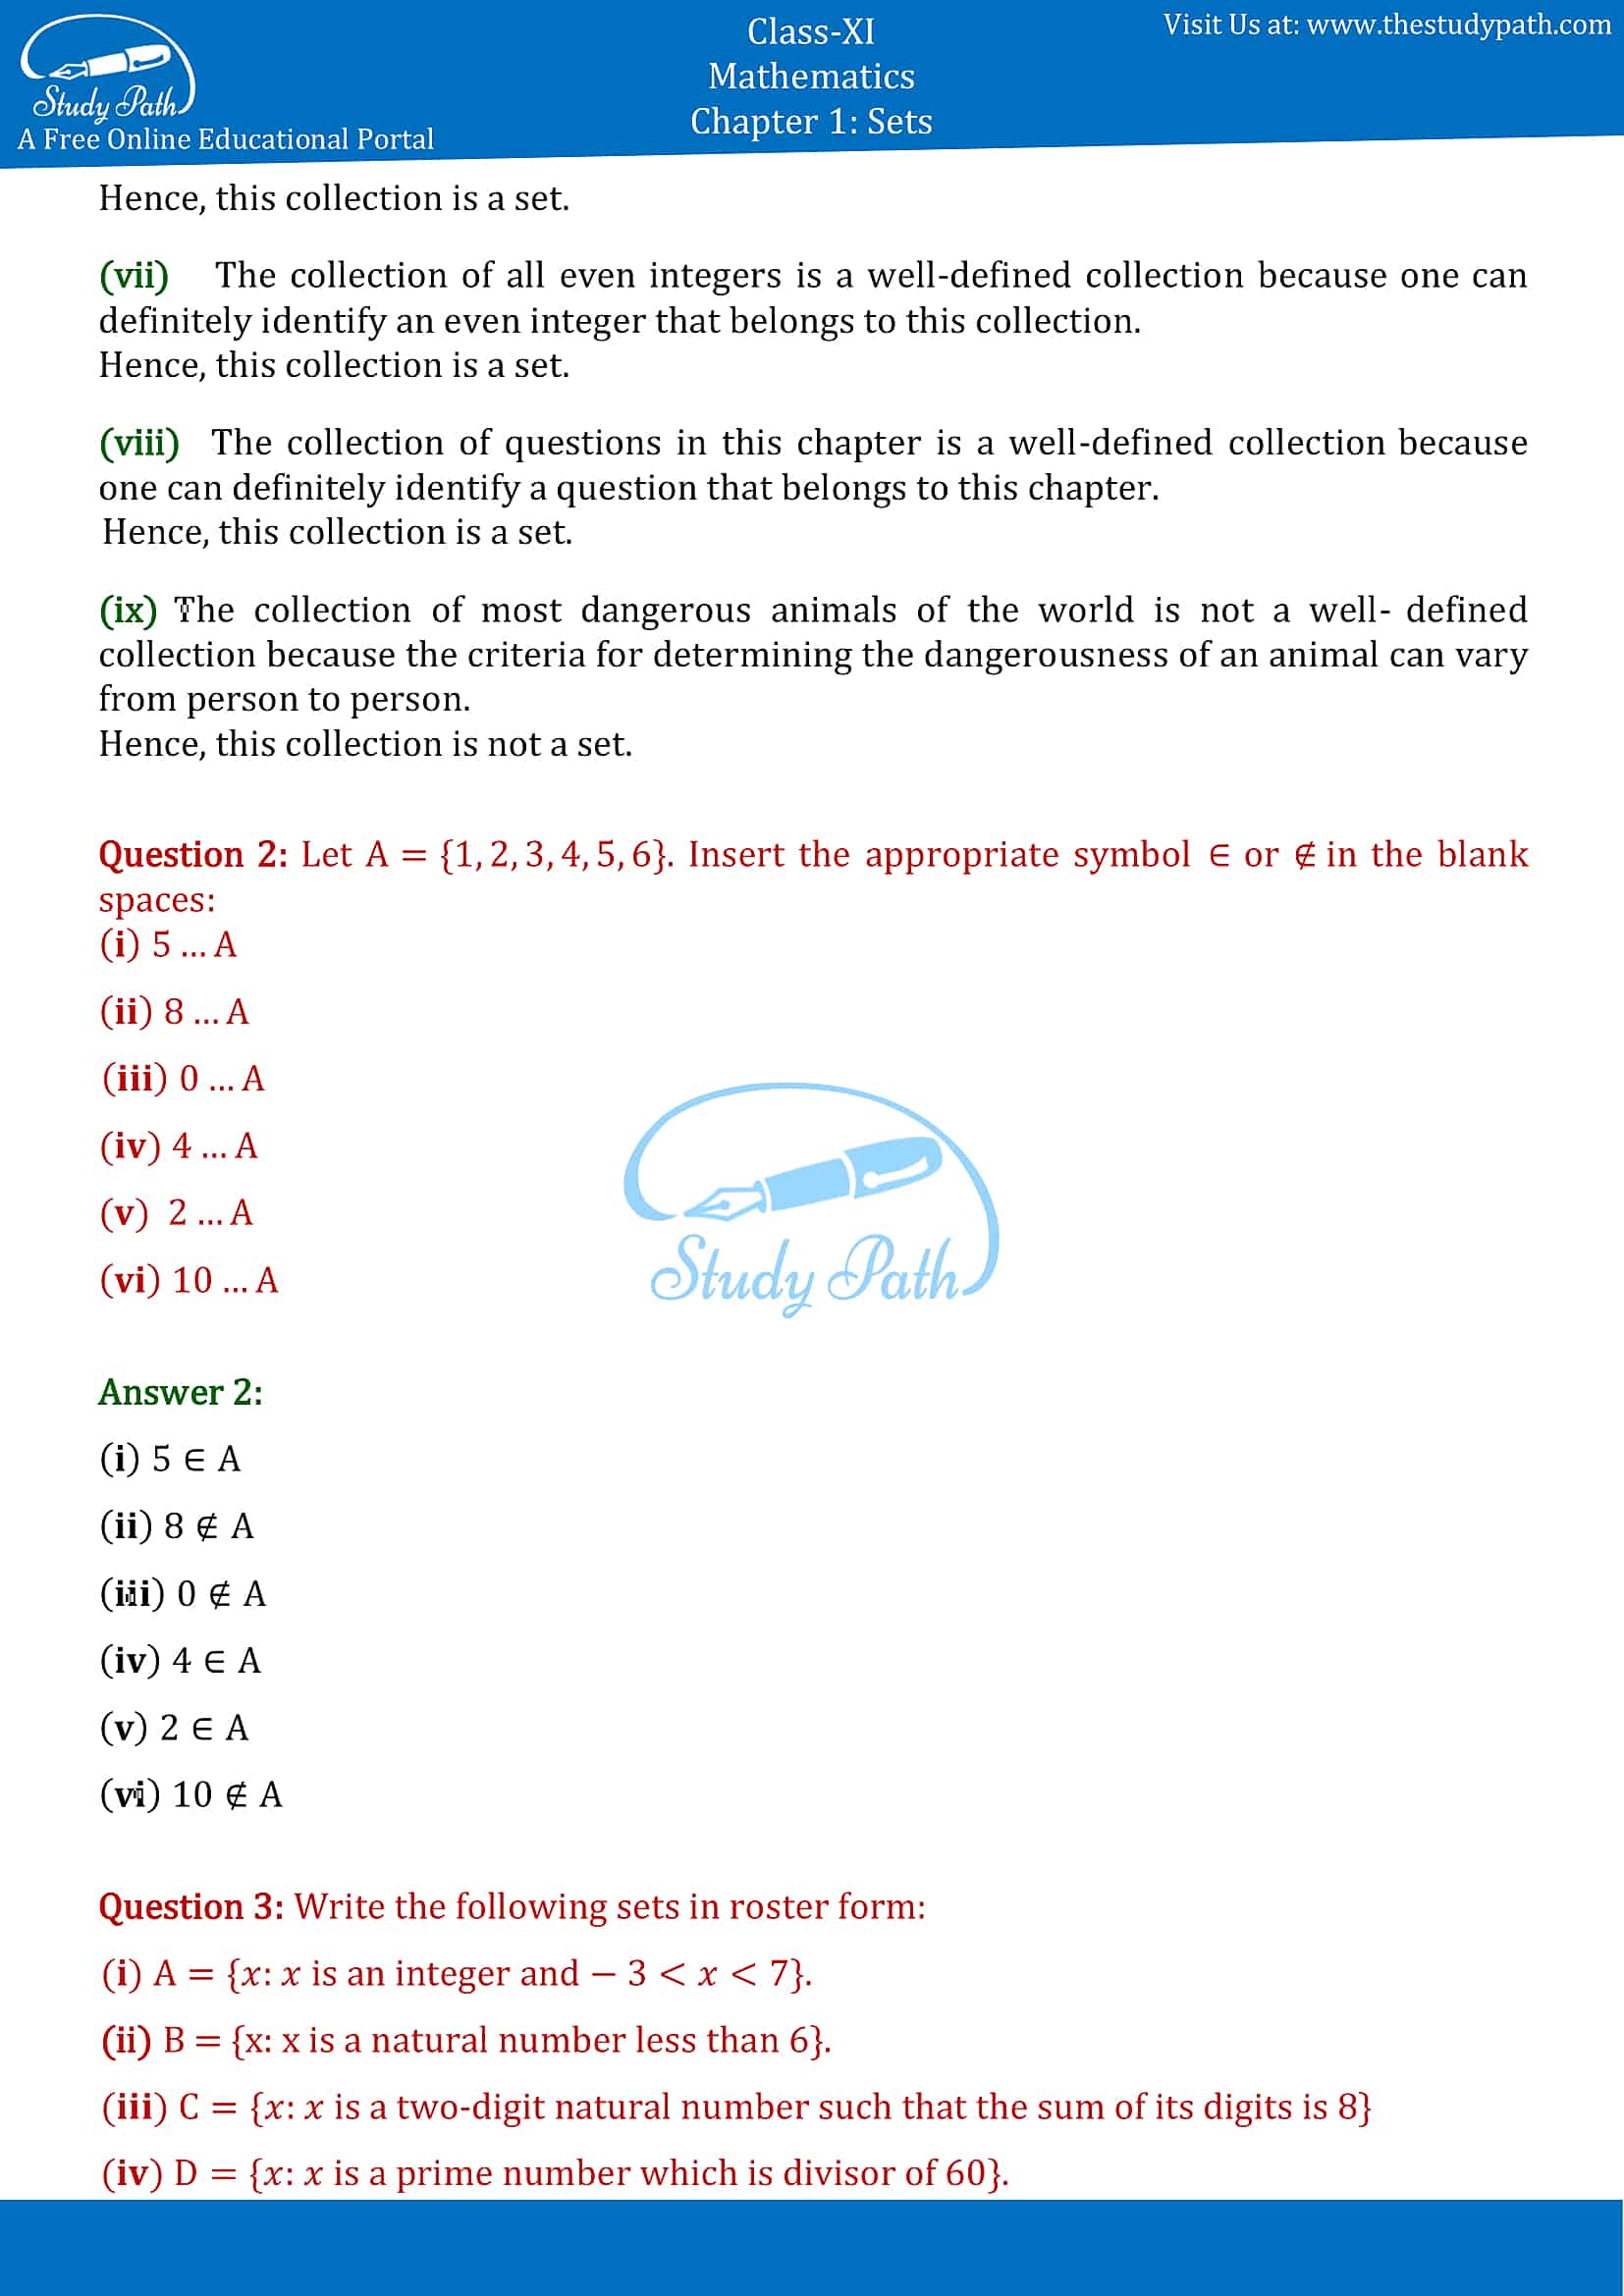 NCERT Solutions for Class 11 Maths chapter 1 sets Exercise 1.1